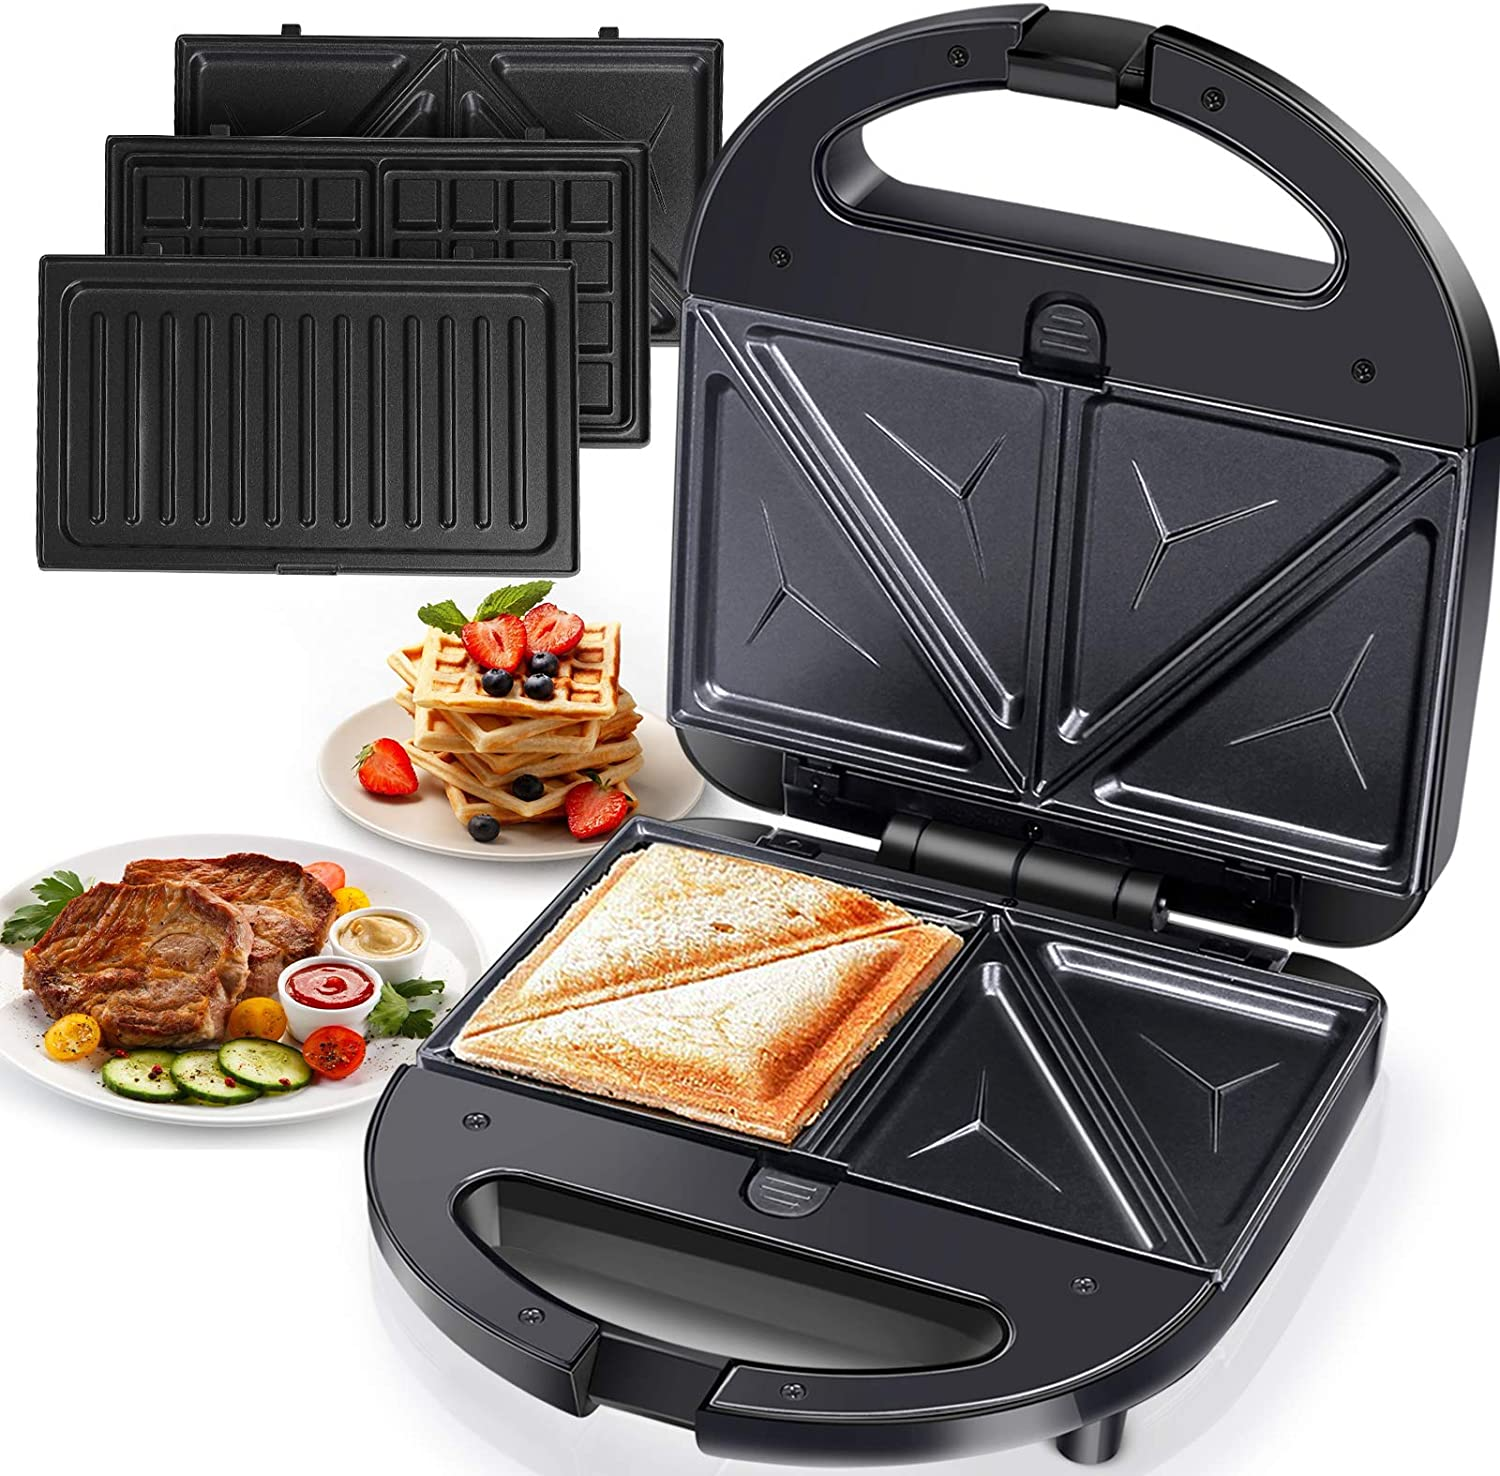 3-in-1 Grilled Cheese Sandwich Maker Waffle Iron with Removable Plates - Aigostar